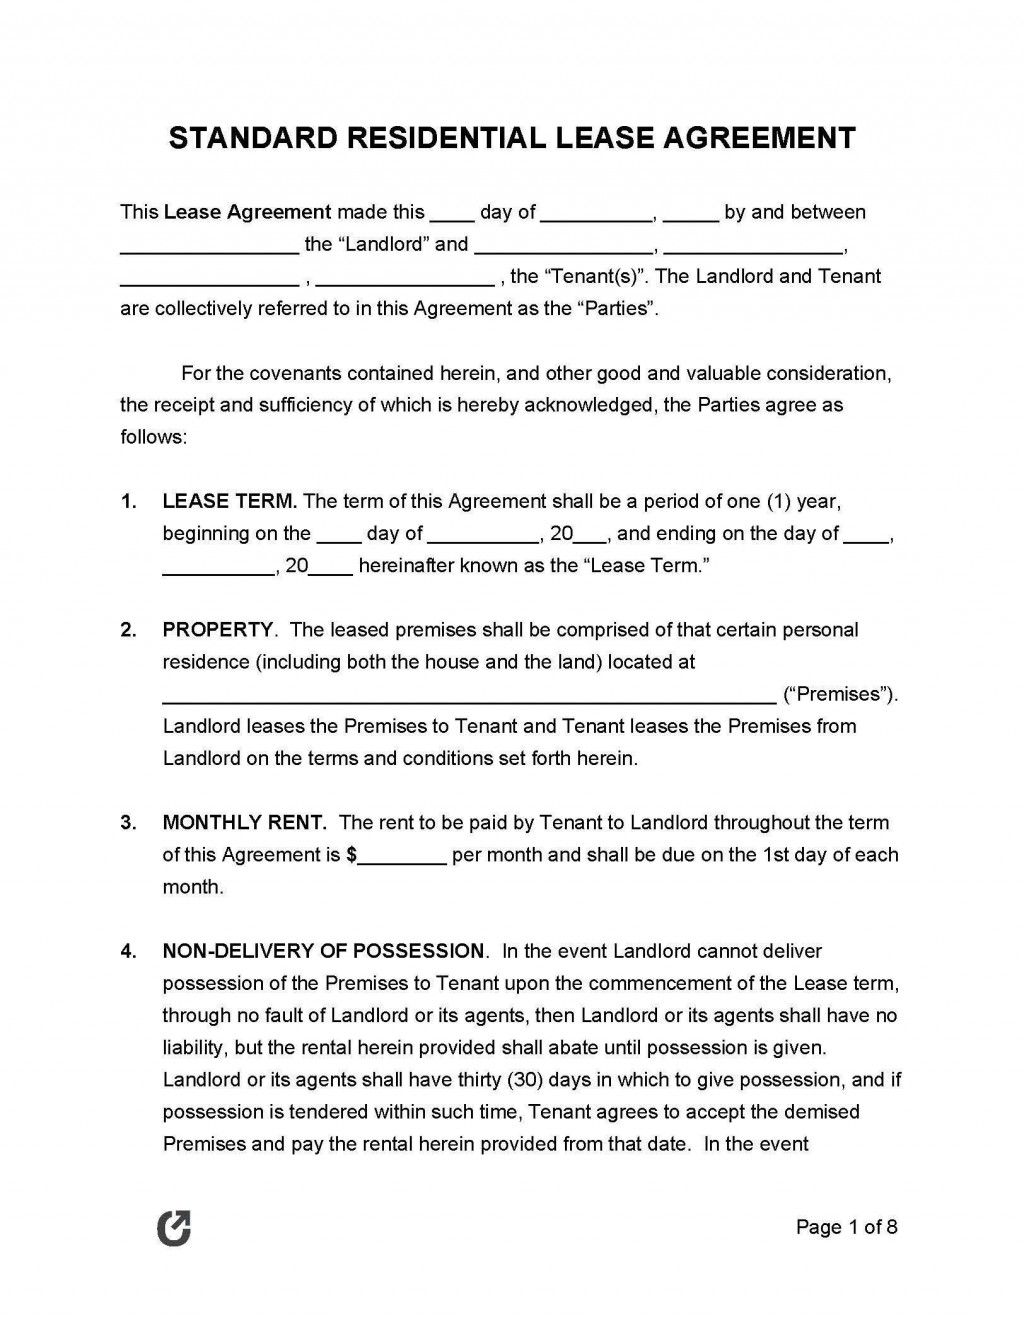 009 Singular Housing Rental Agreement Template Free High Resolution Large